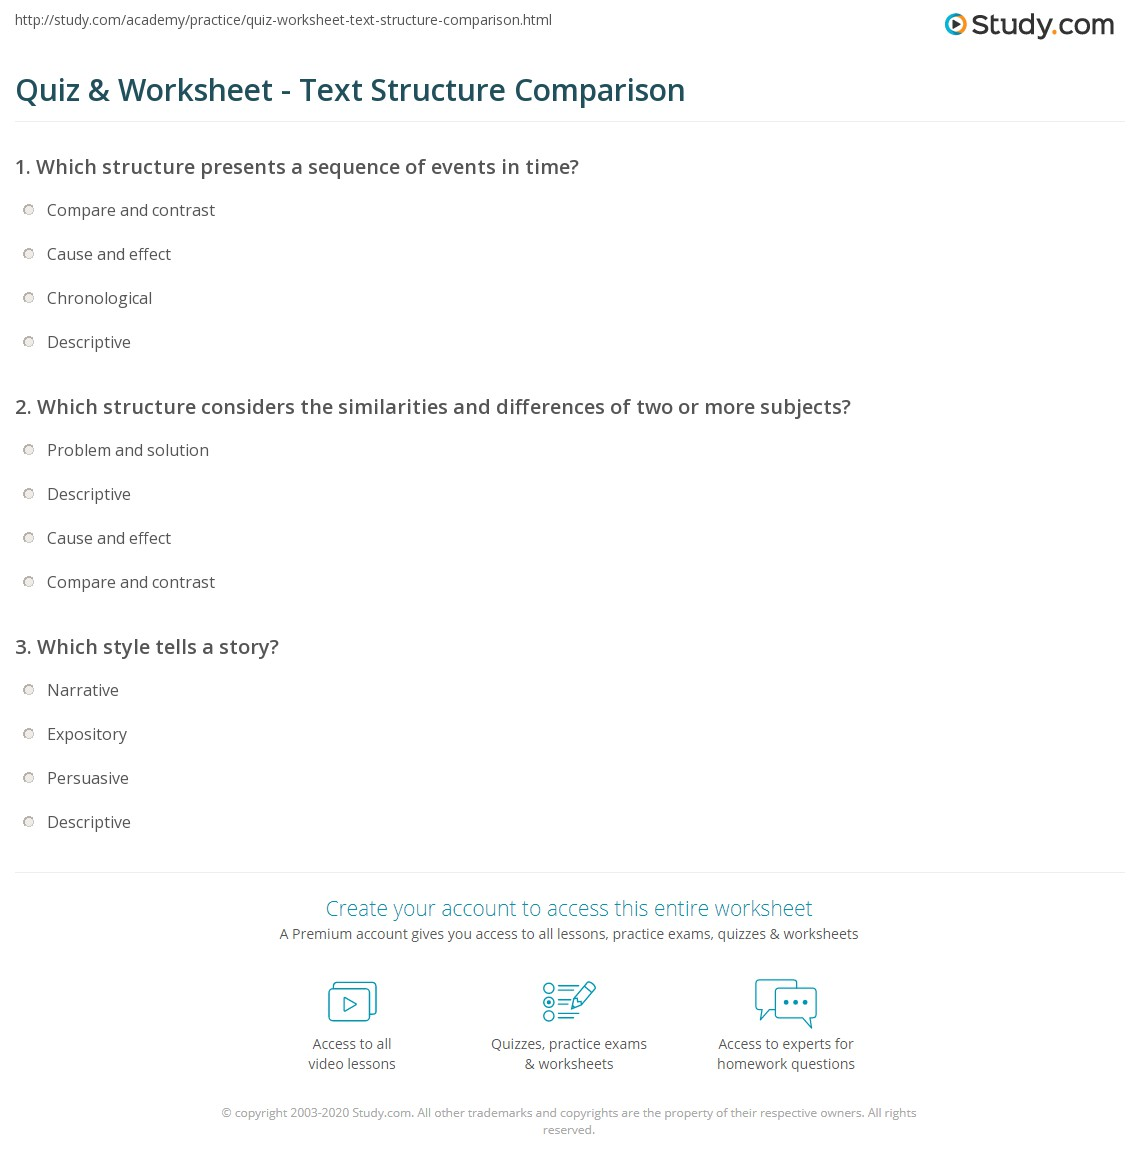 Workbooks text structure practice worksheets : Quiz & Worksheet - Text Structure Comparison | Study.com